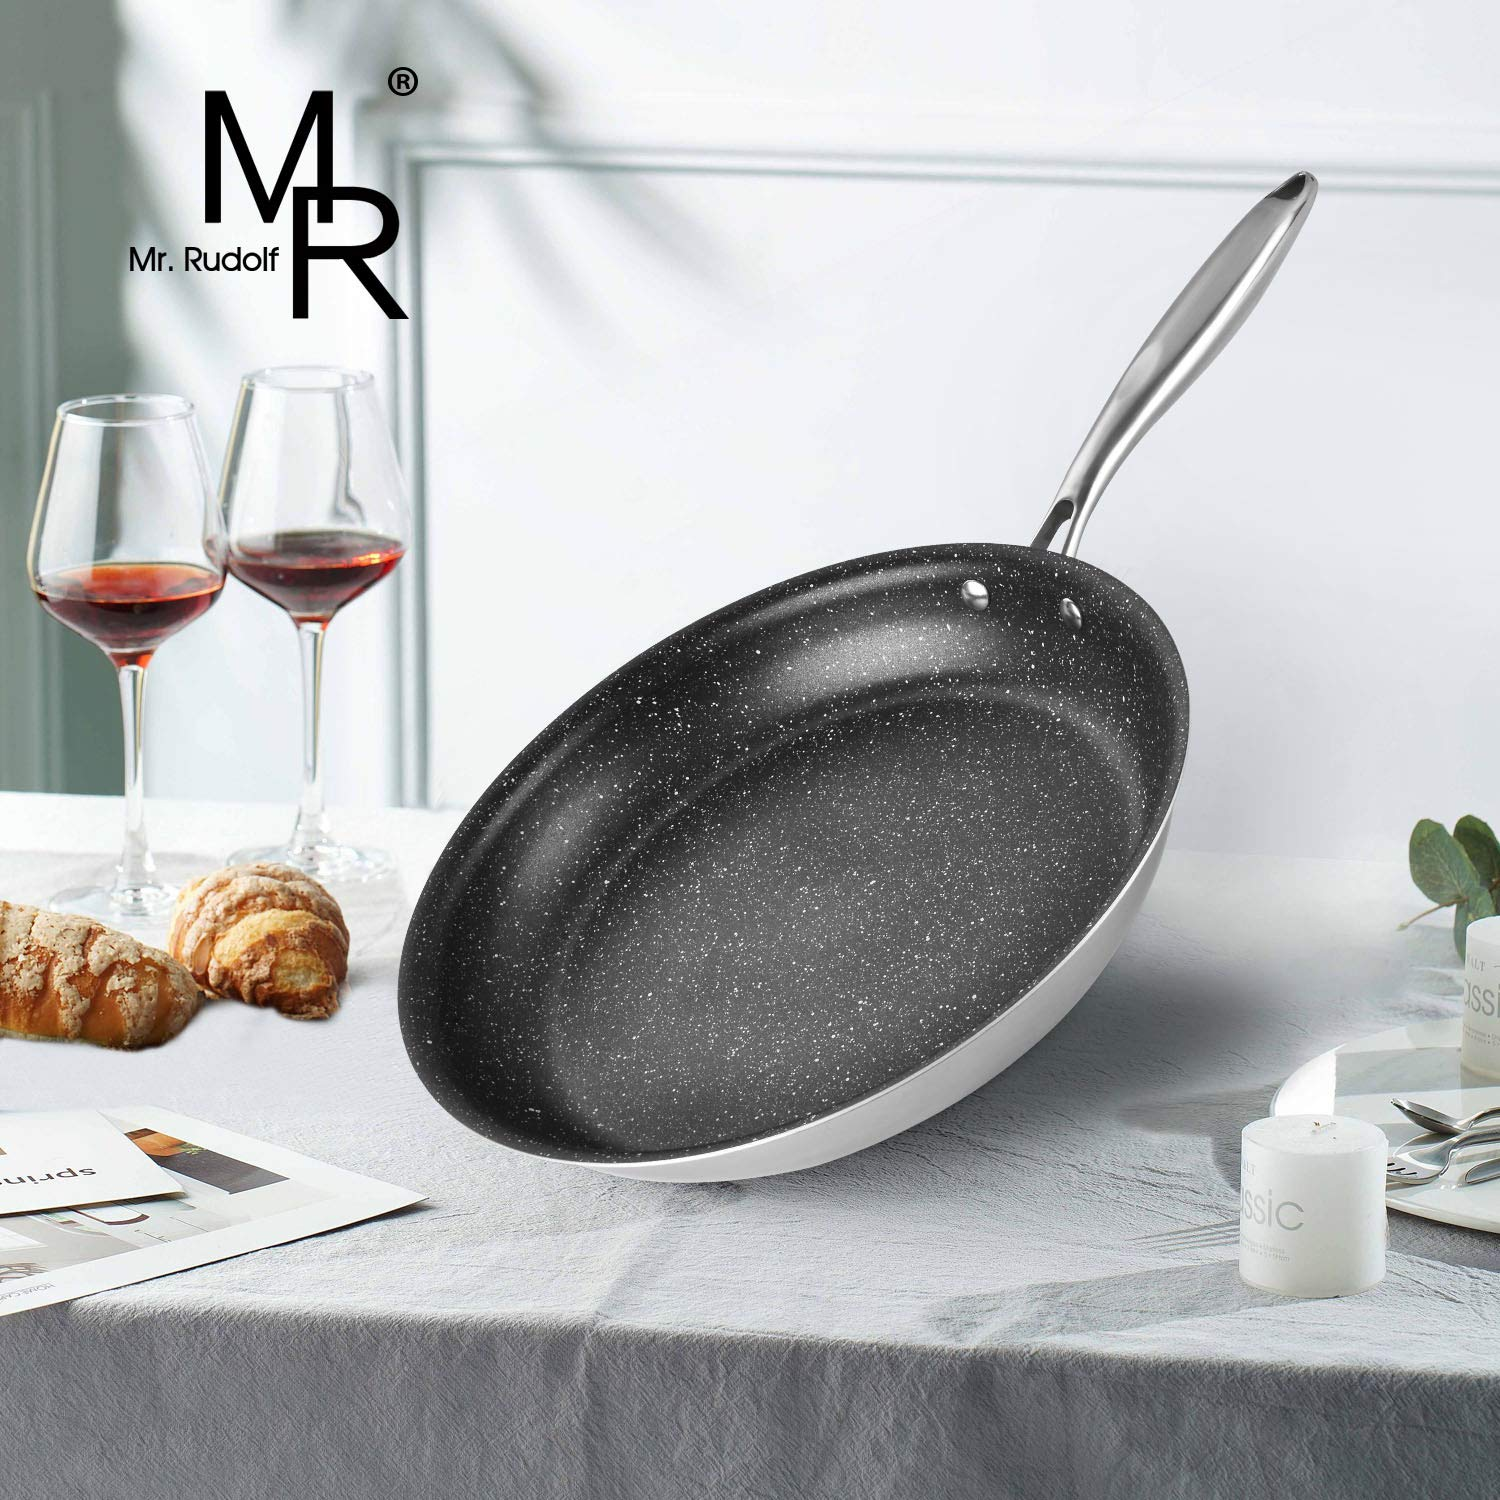 Mr Rudolf 18/10 Tri-Ply Bonded Stainless steel 12 inch Nonstick Frying Pan Skillet Pan PFOA Free Stone-Derived Non-Stick Granite Coating from the US whitford coating